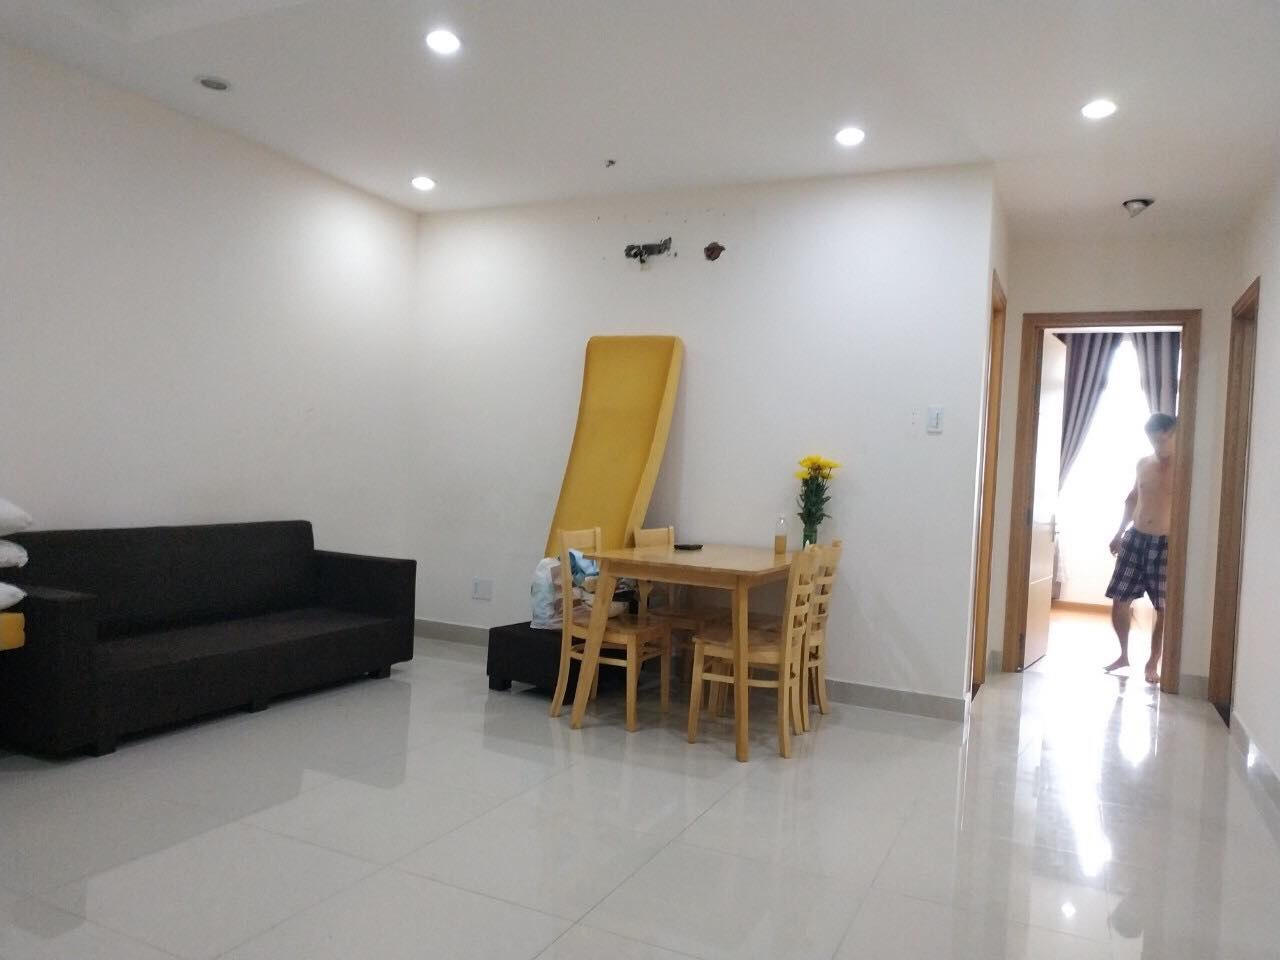 rent Him Lam Riverside - 2 bedroom - 1 wc